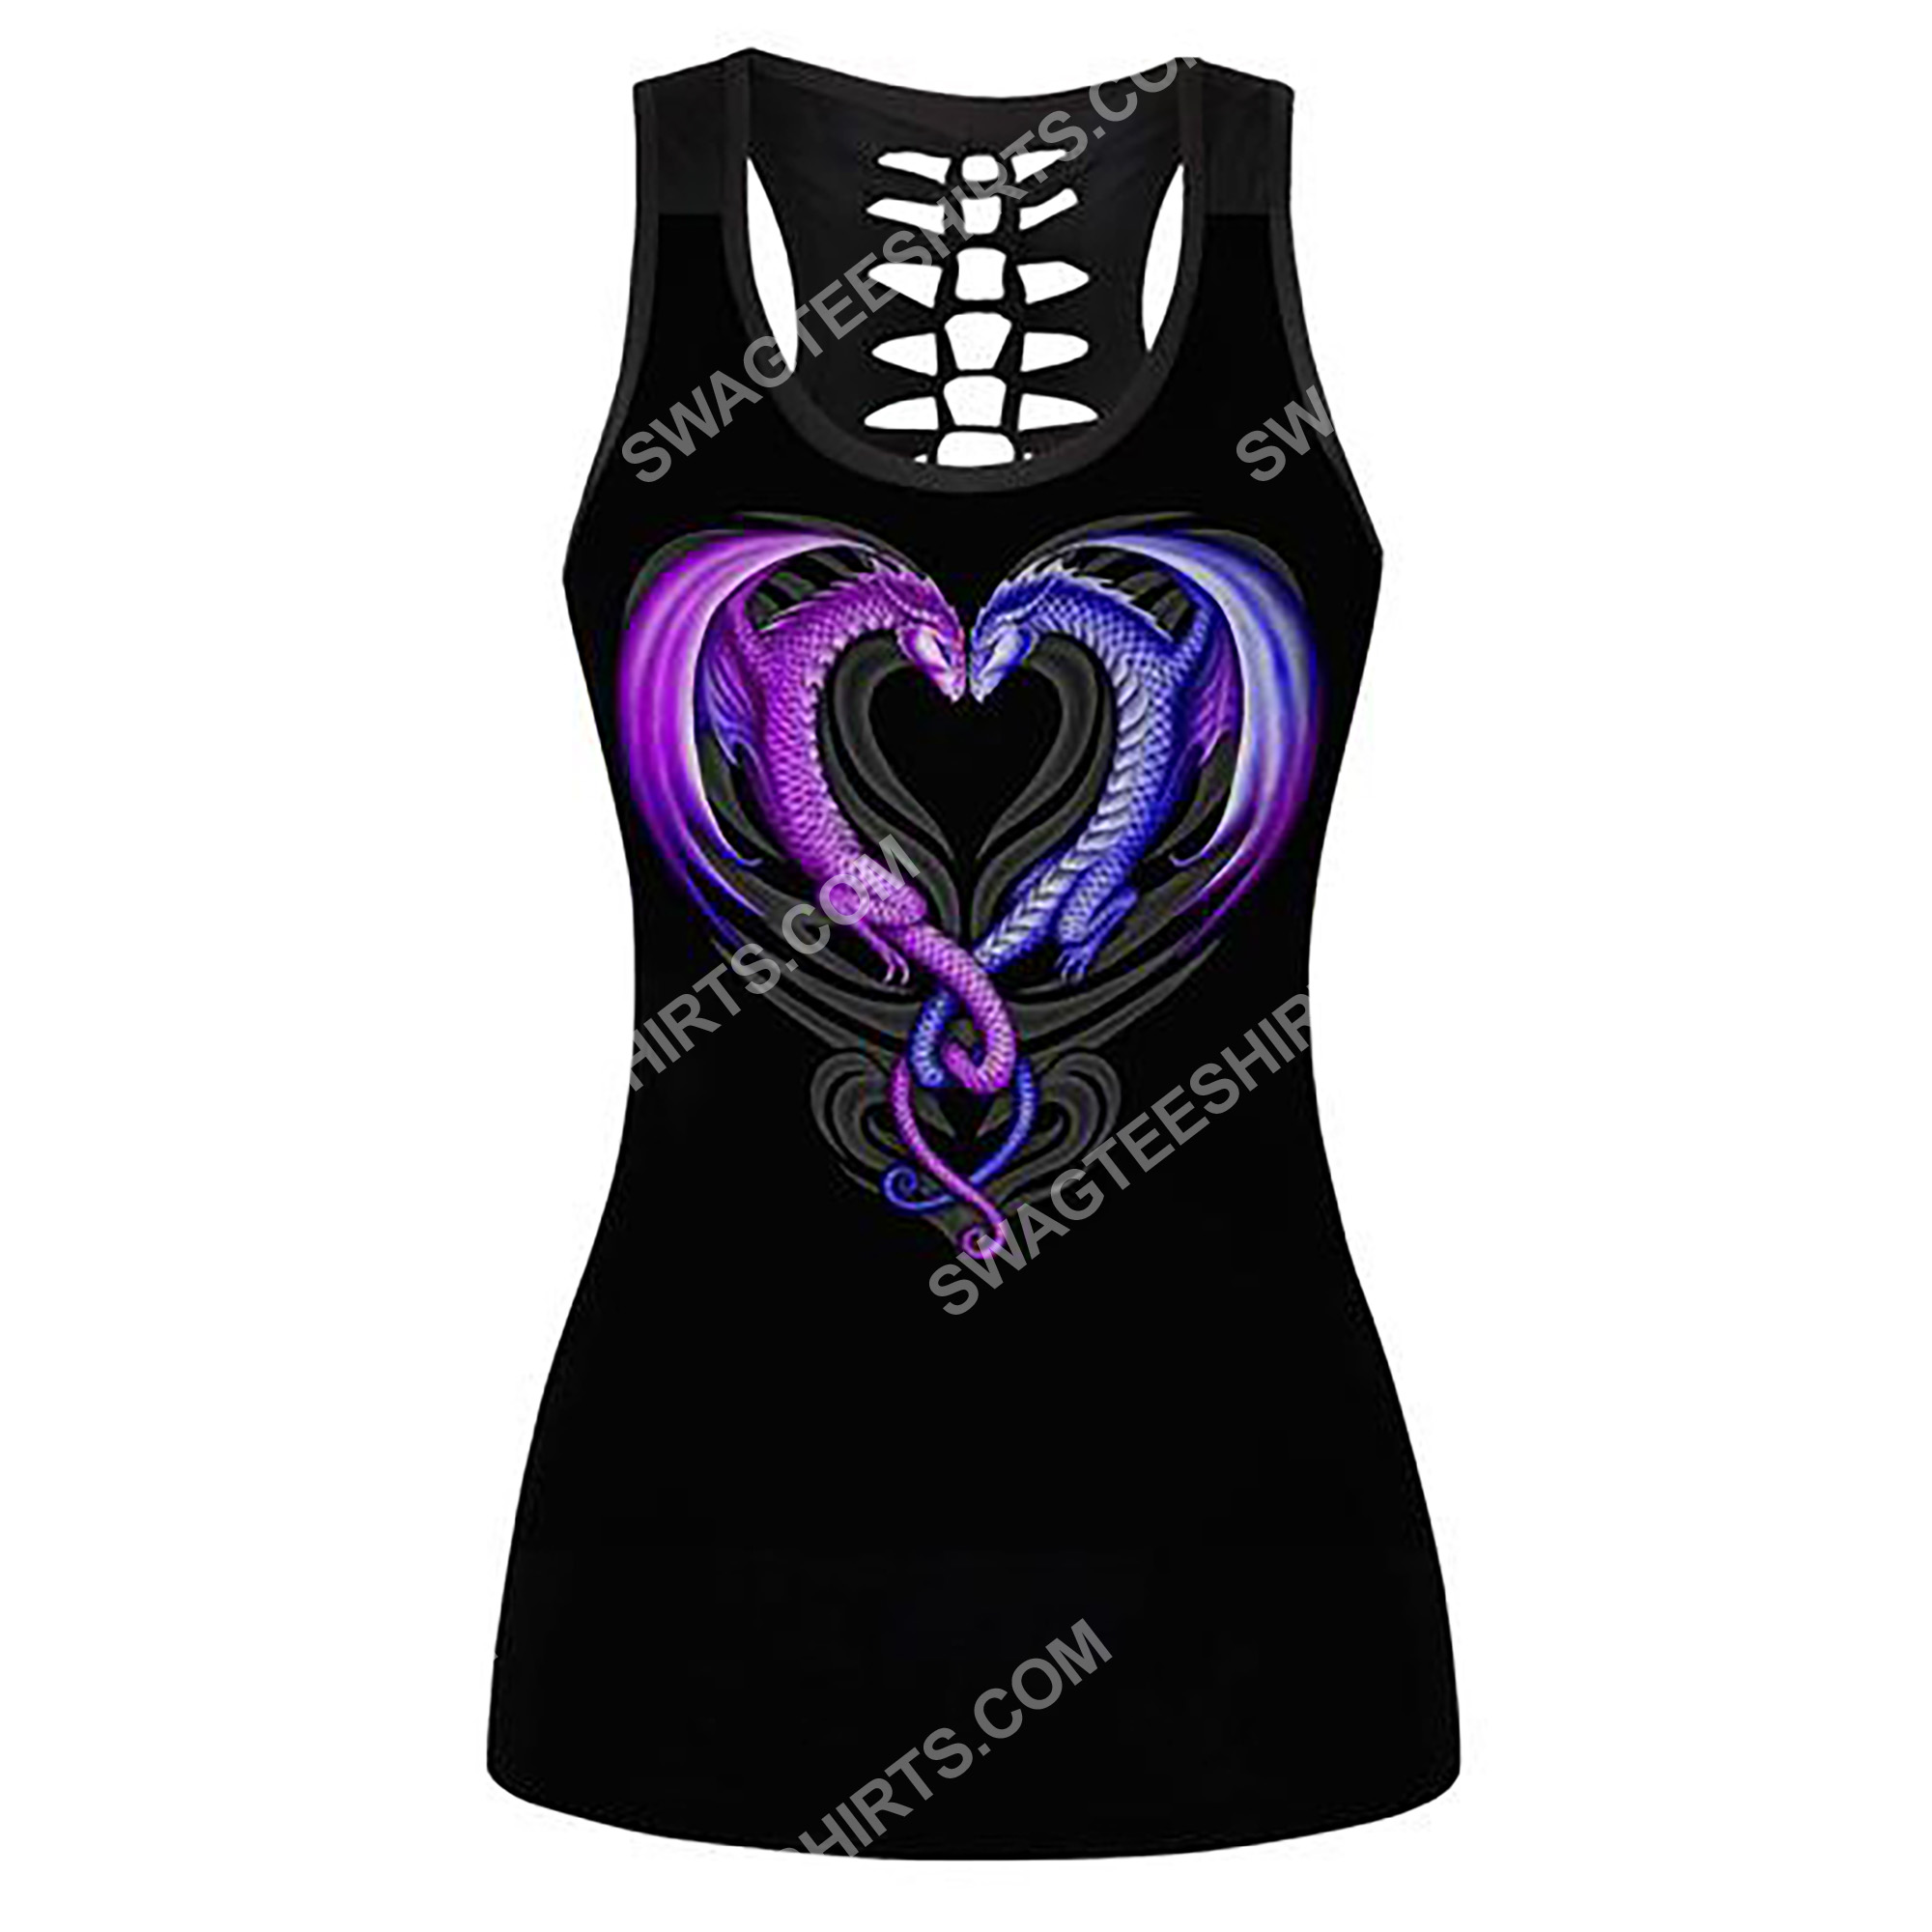 the dragon couple full printing hollow tank top 2(2) - Copy